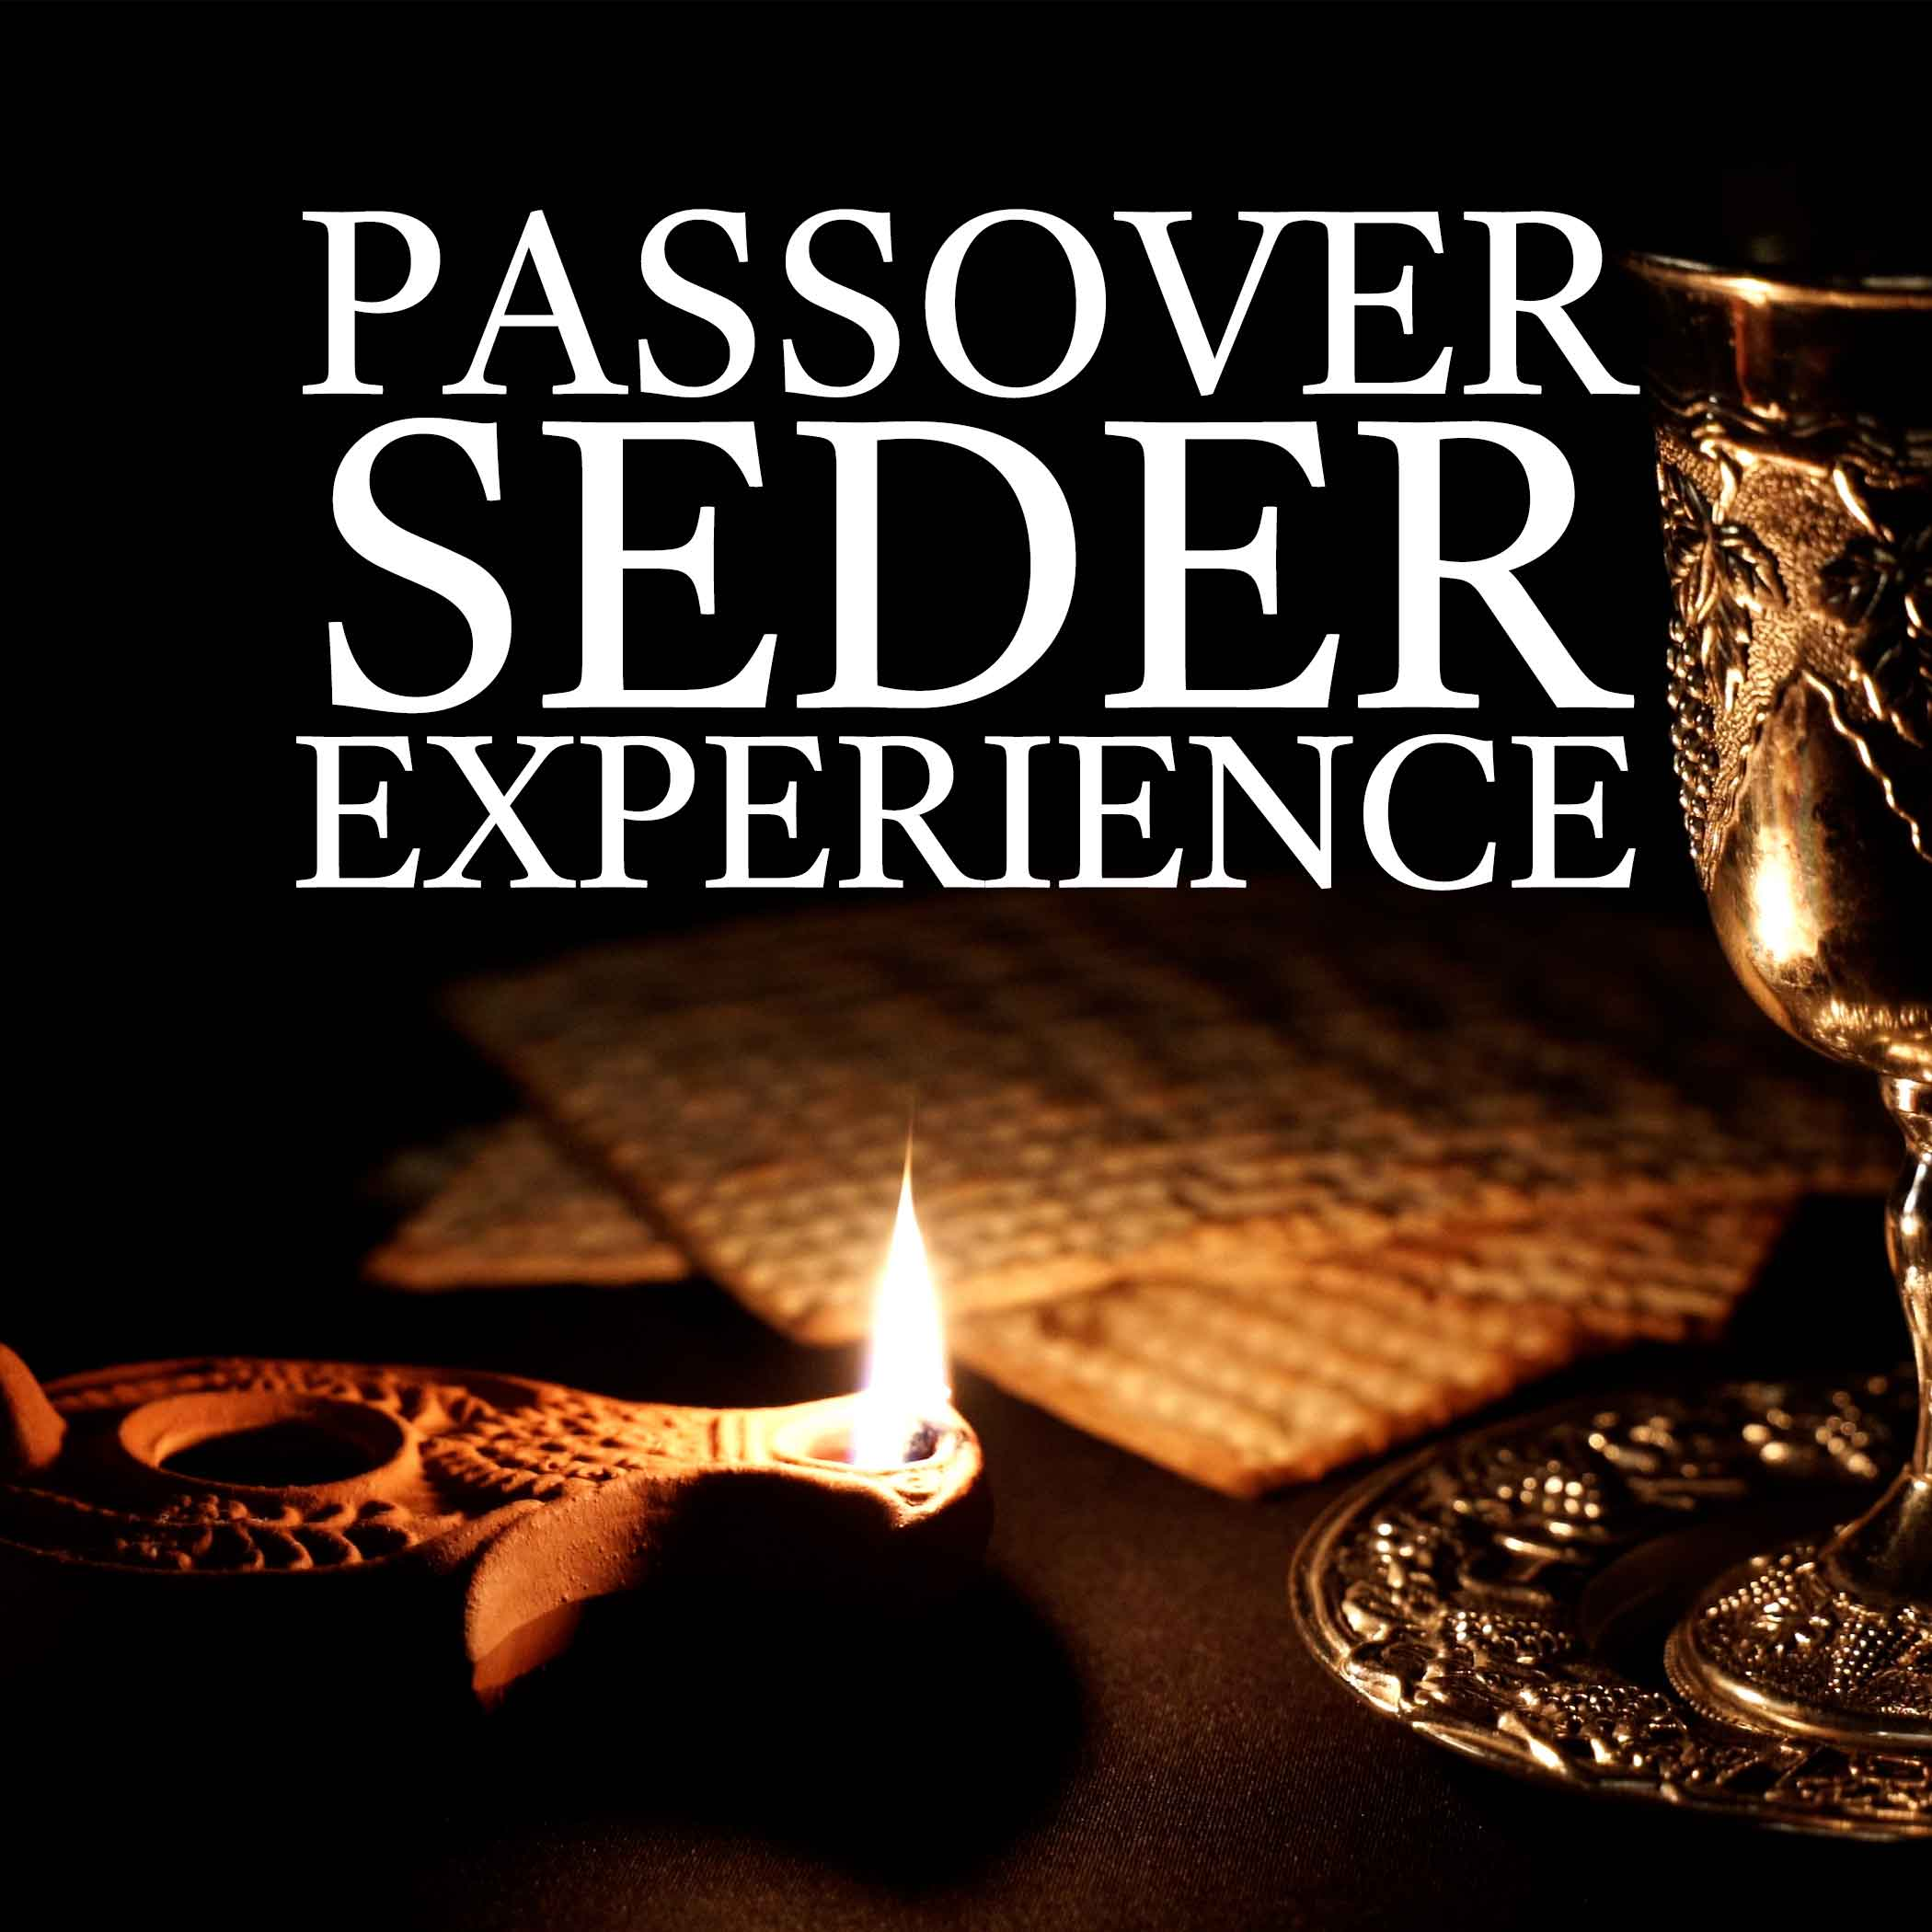 passover seder experience